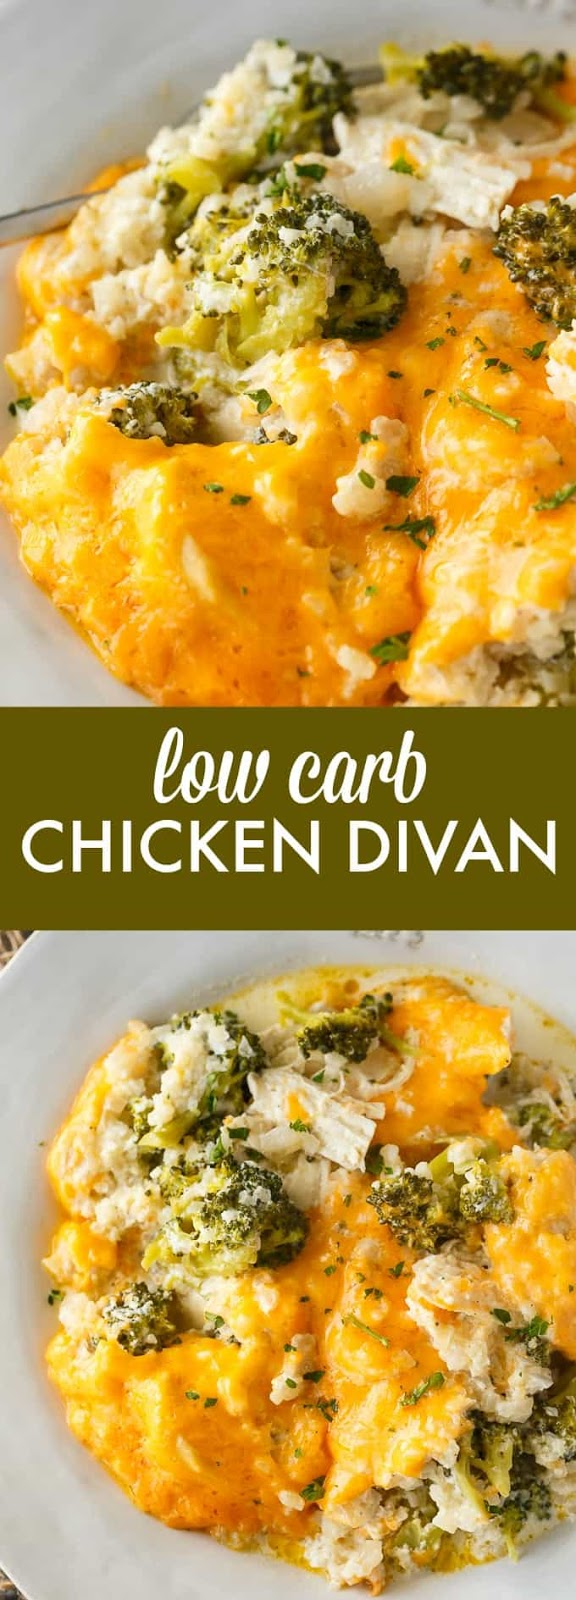 Low Carb Chicken Divan